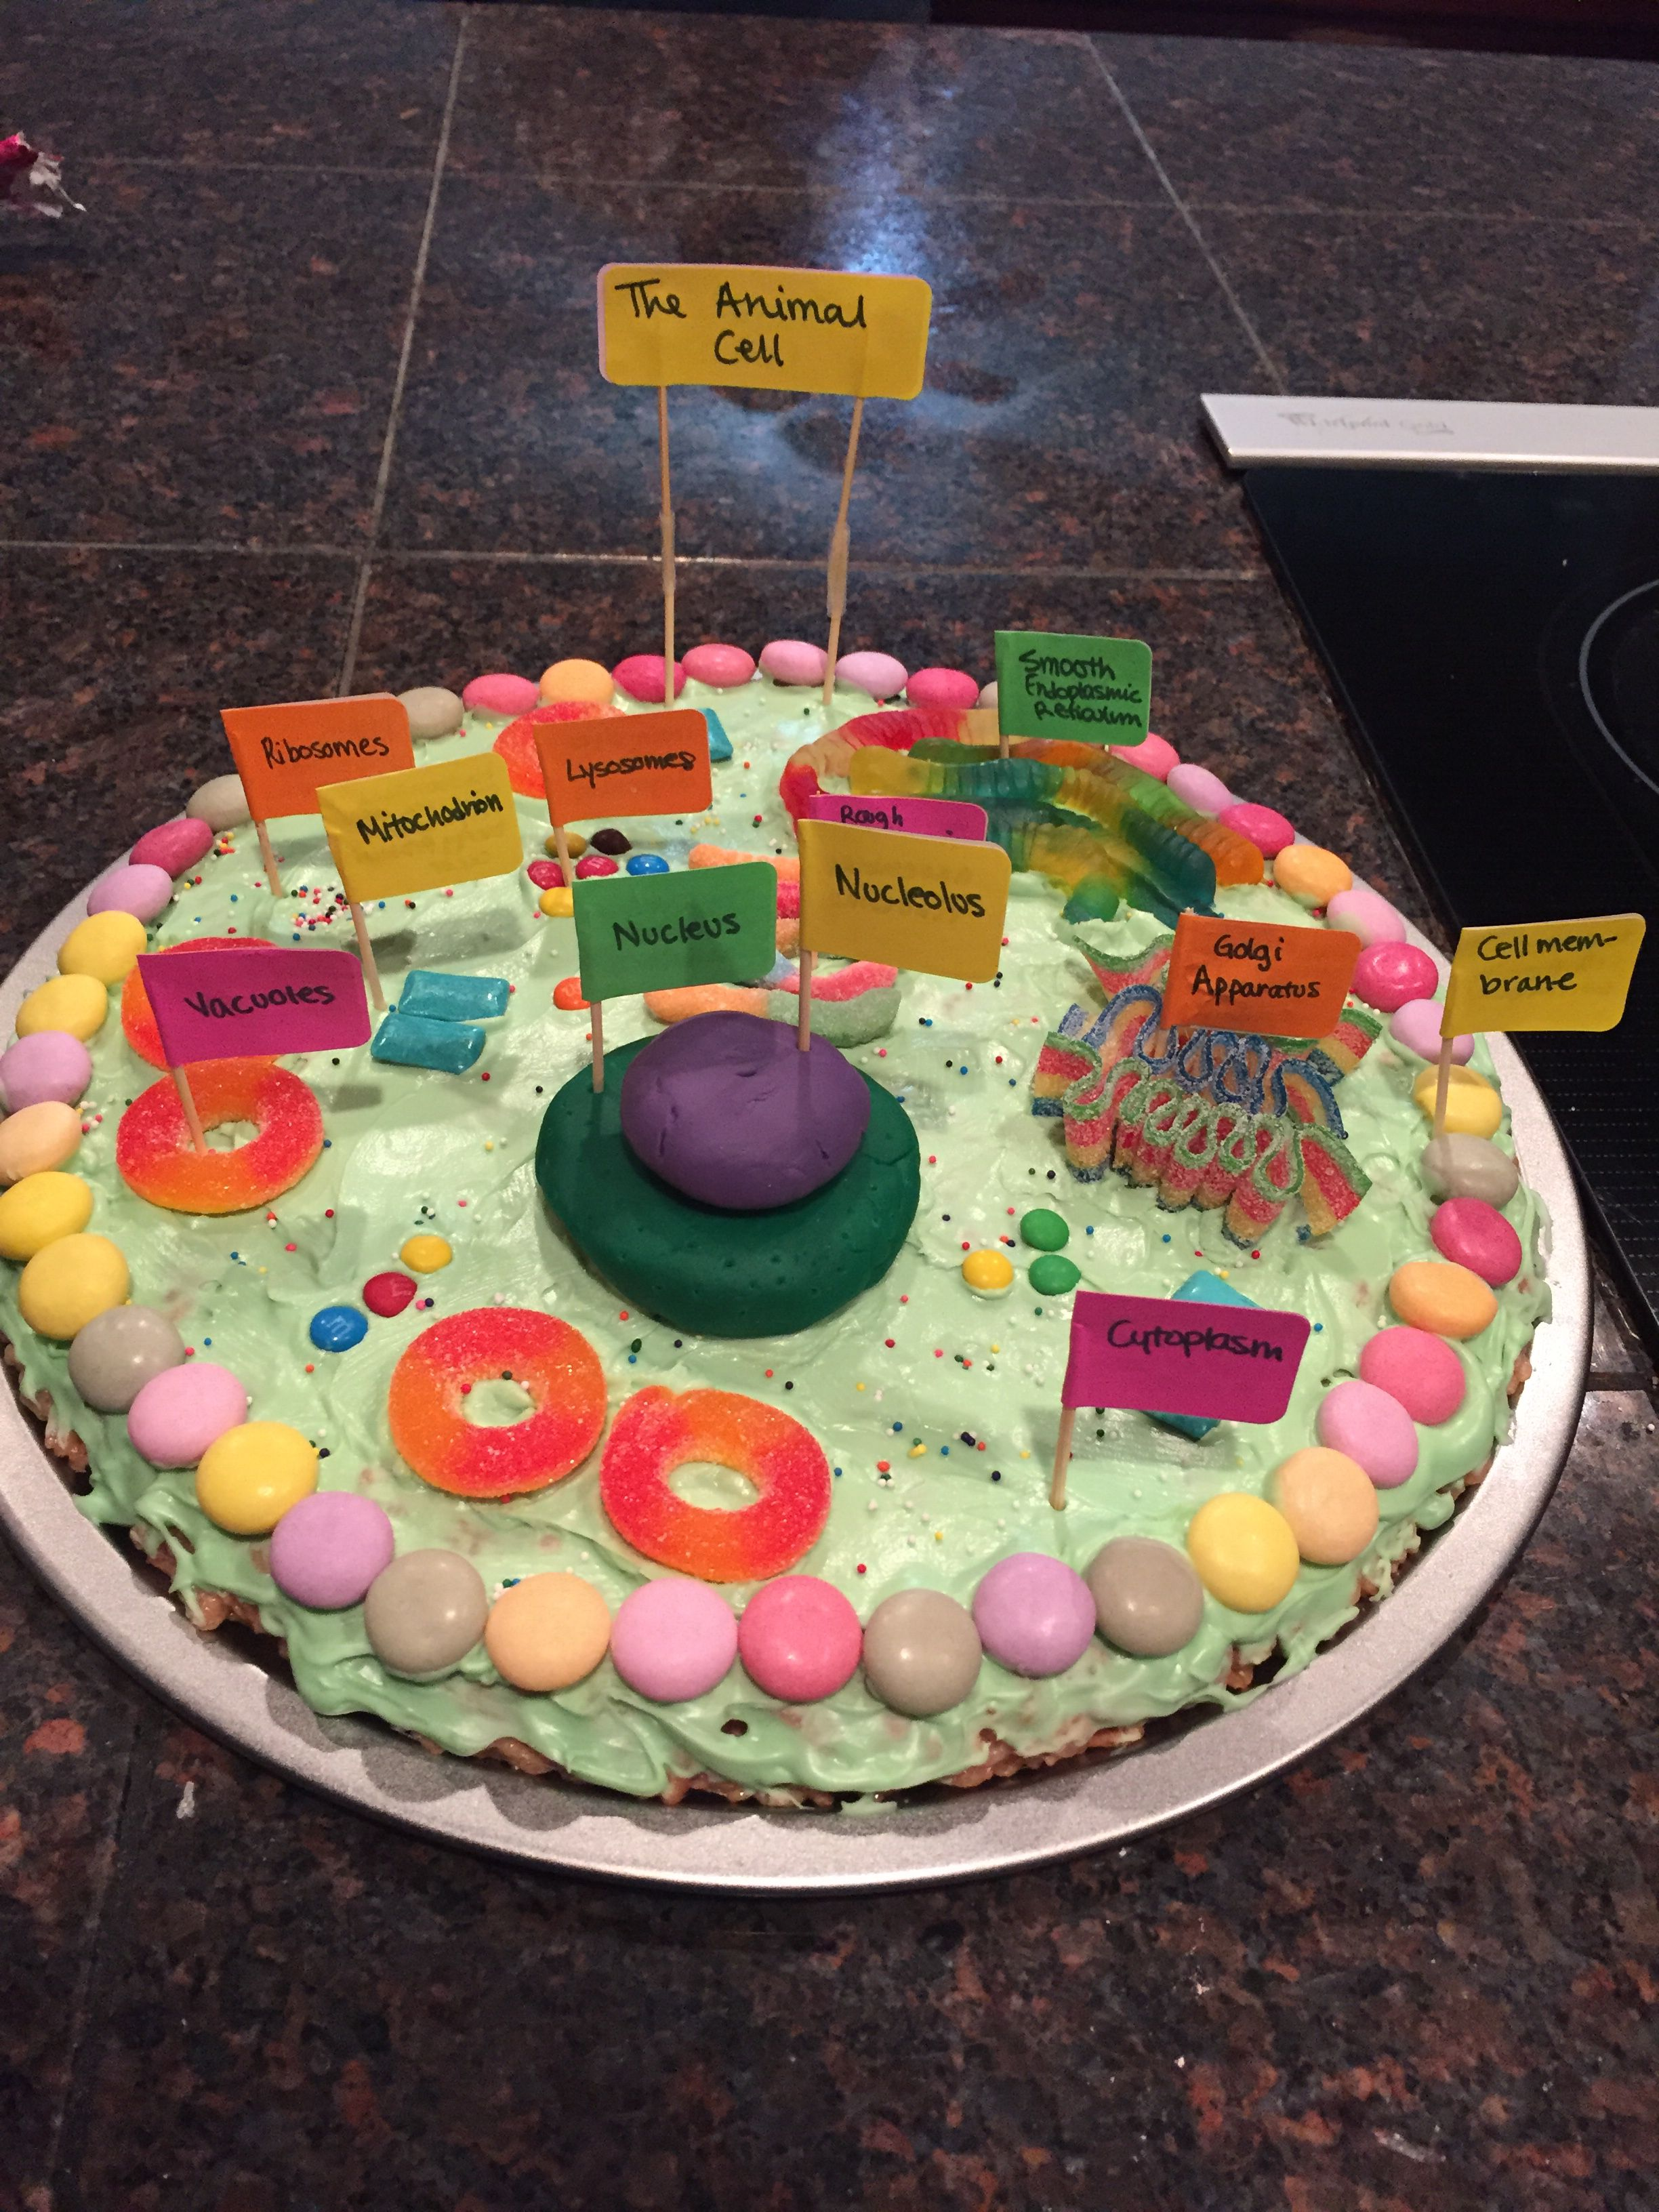 ANIMAL CELL PROJECT! Edible! Project ideas! Pinterest